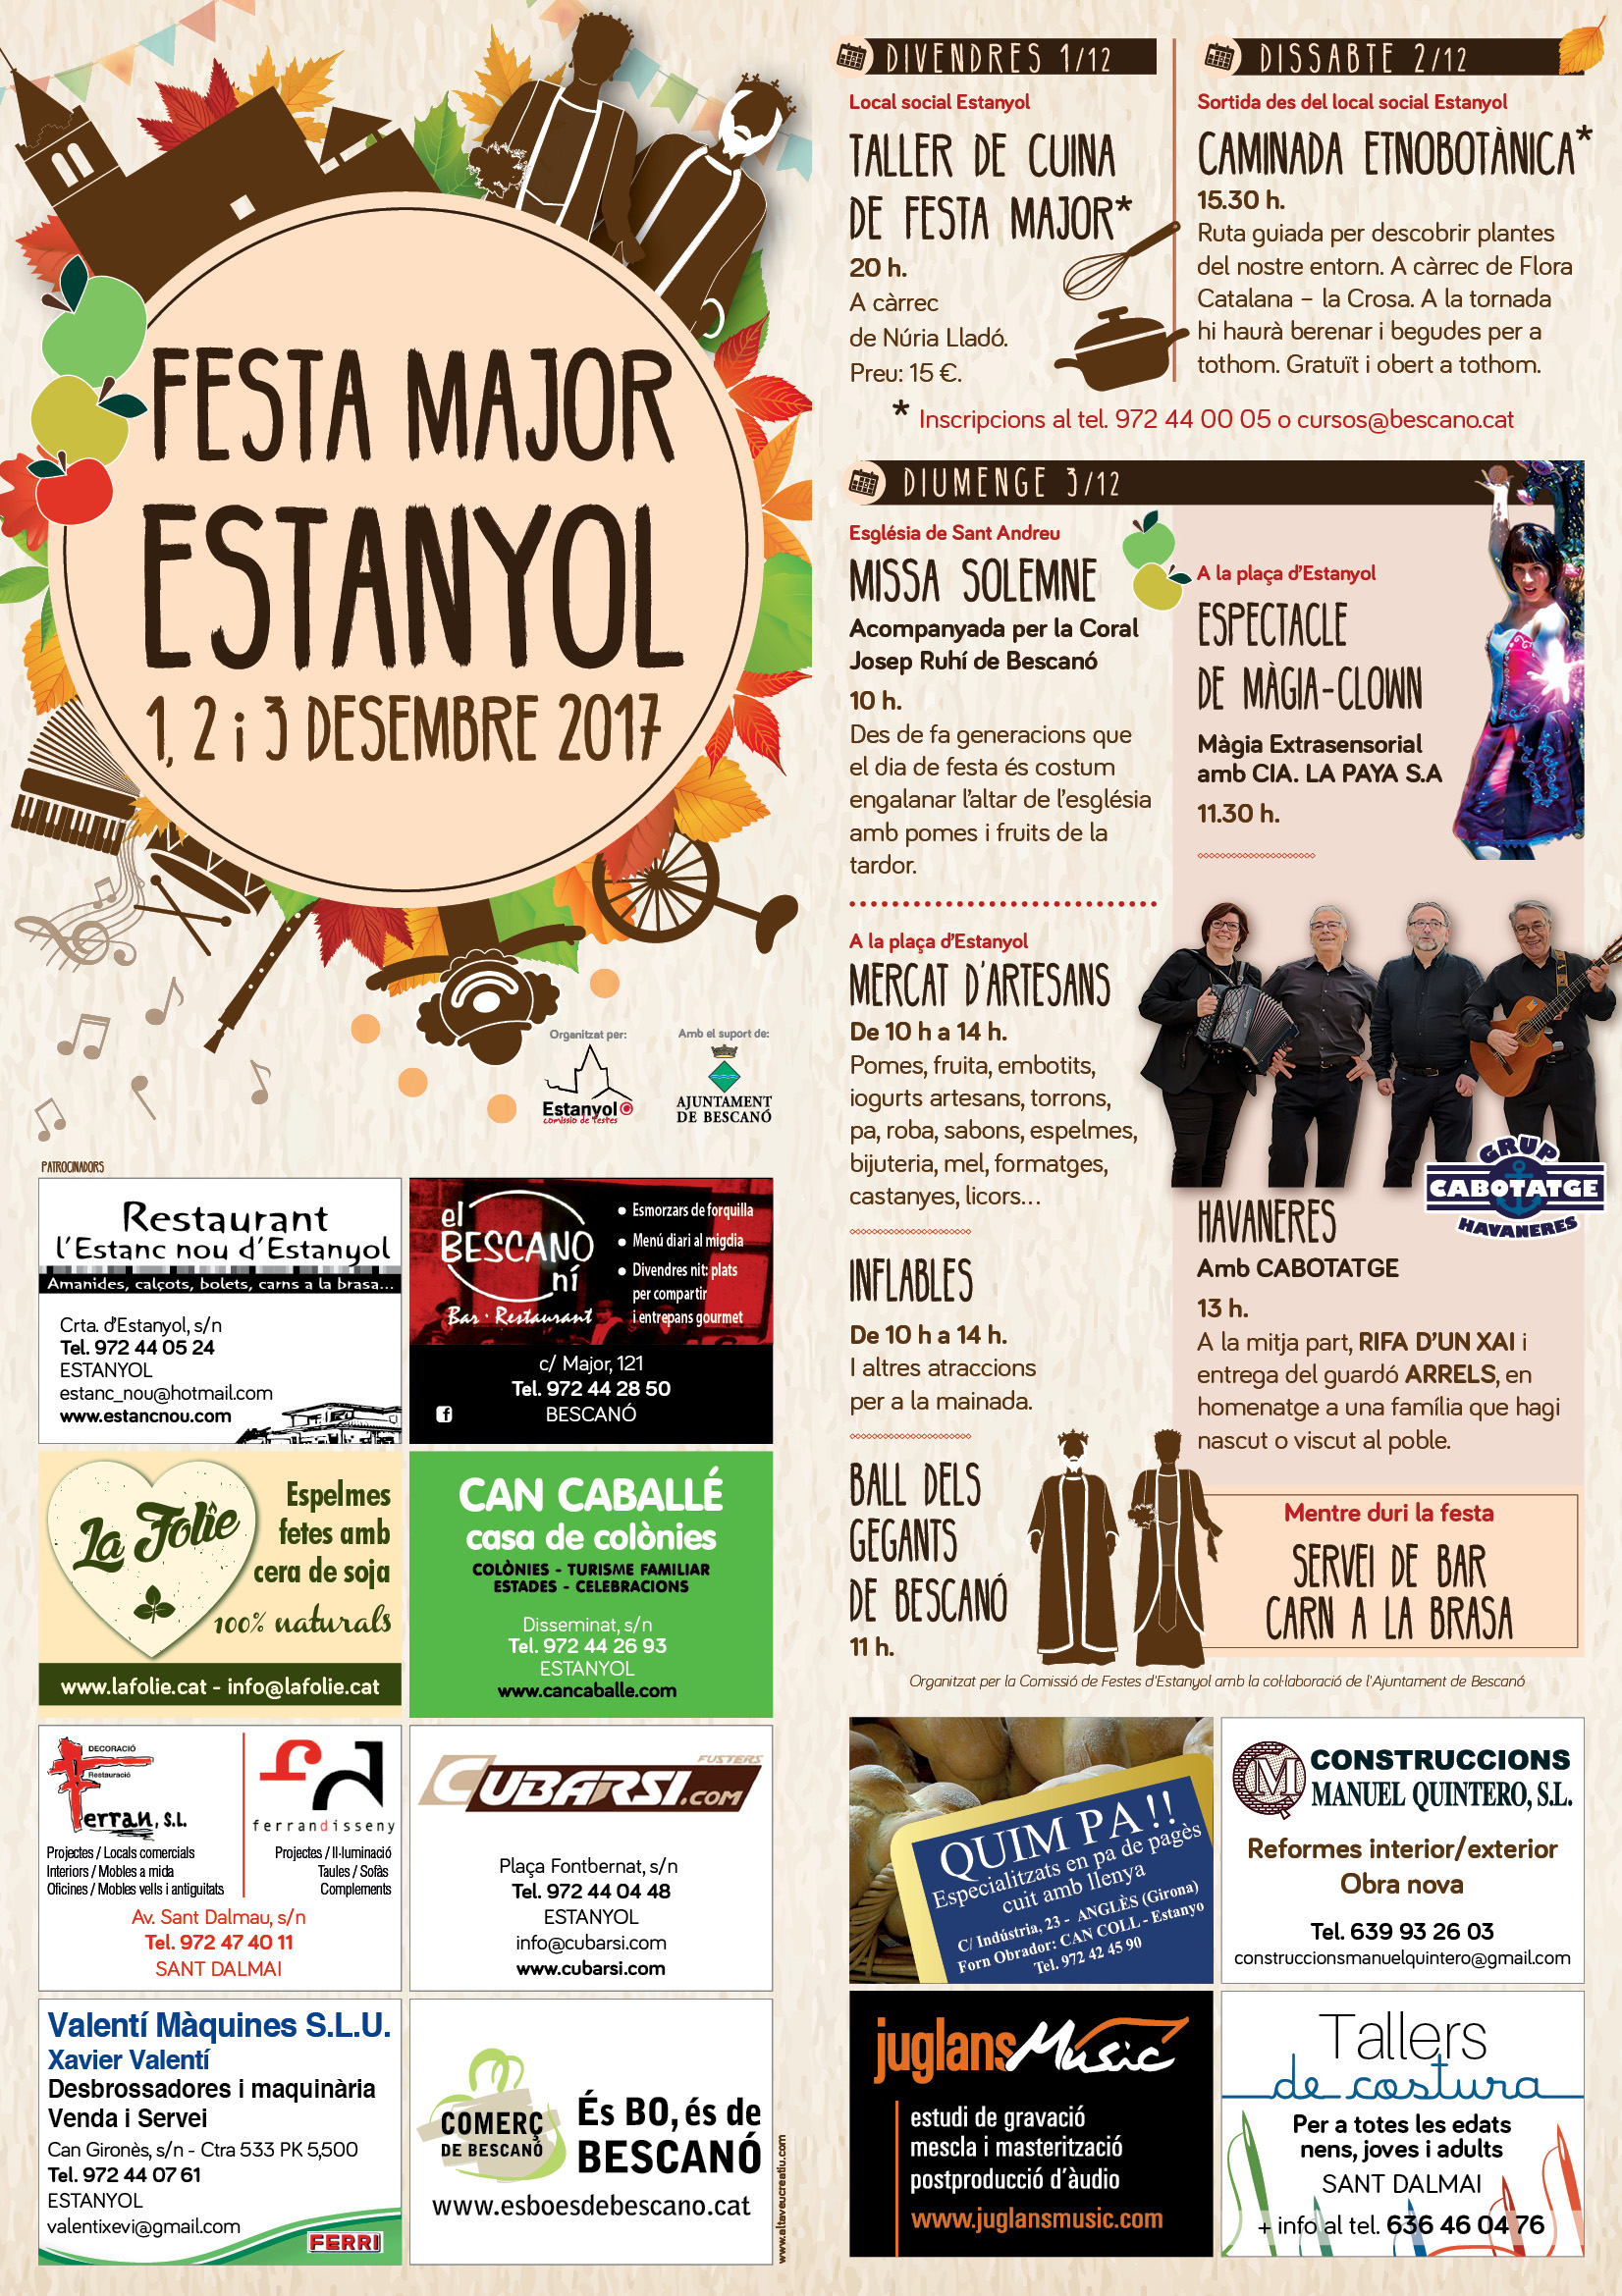 Festa_Major_Estanyol_2017